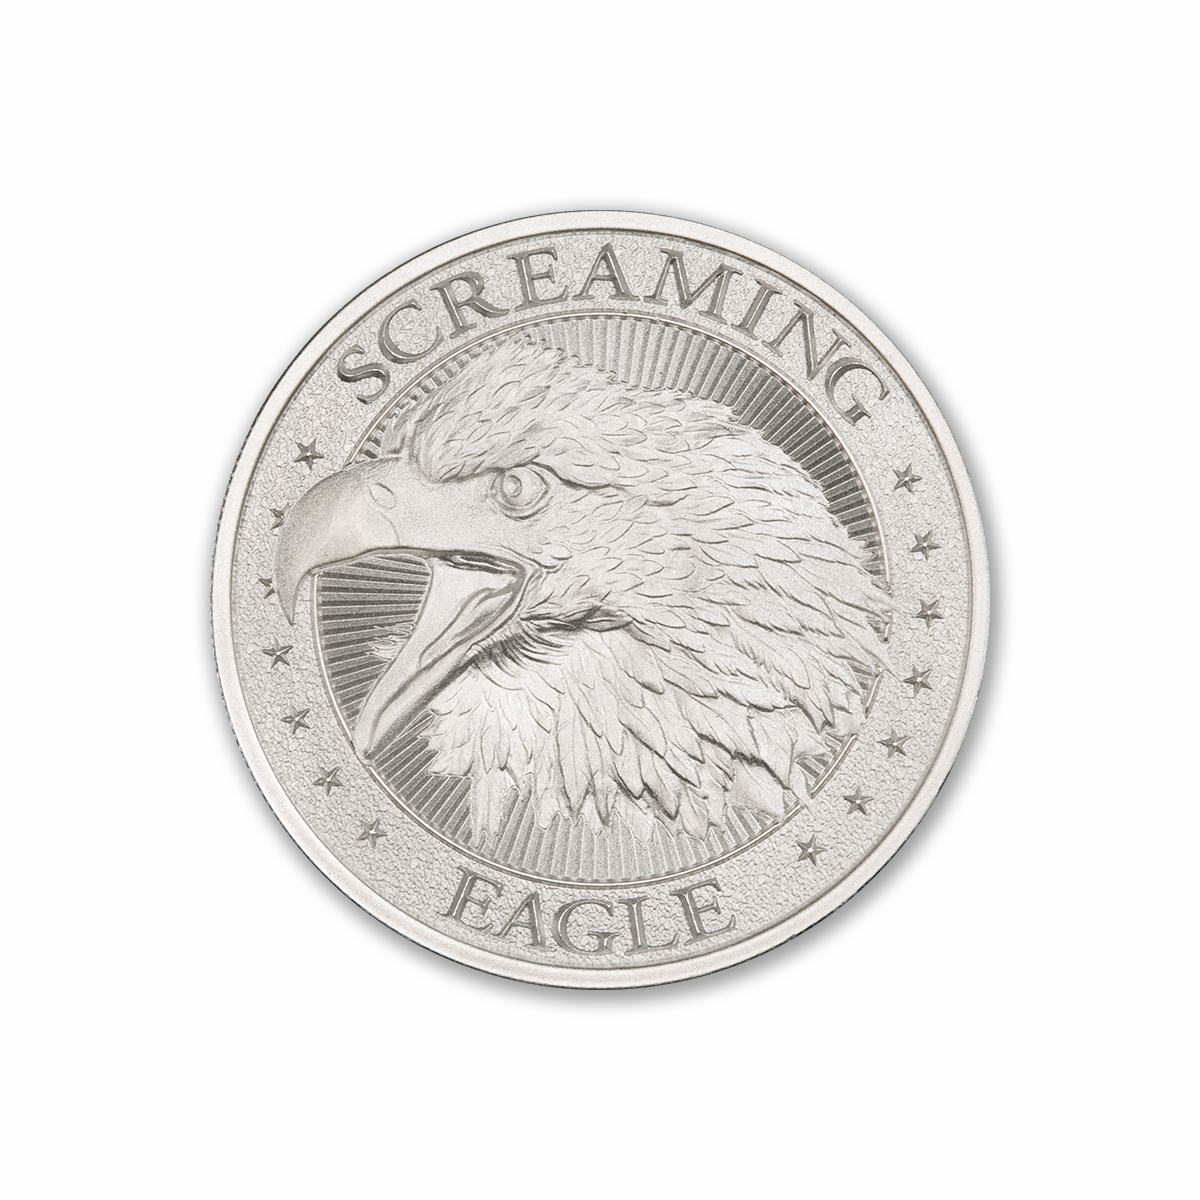 SCREAMING EAGLE – HIGH RELIEF – 2 TROY OUNCE – 39MM